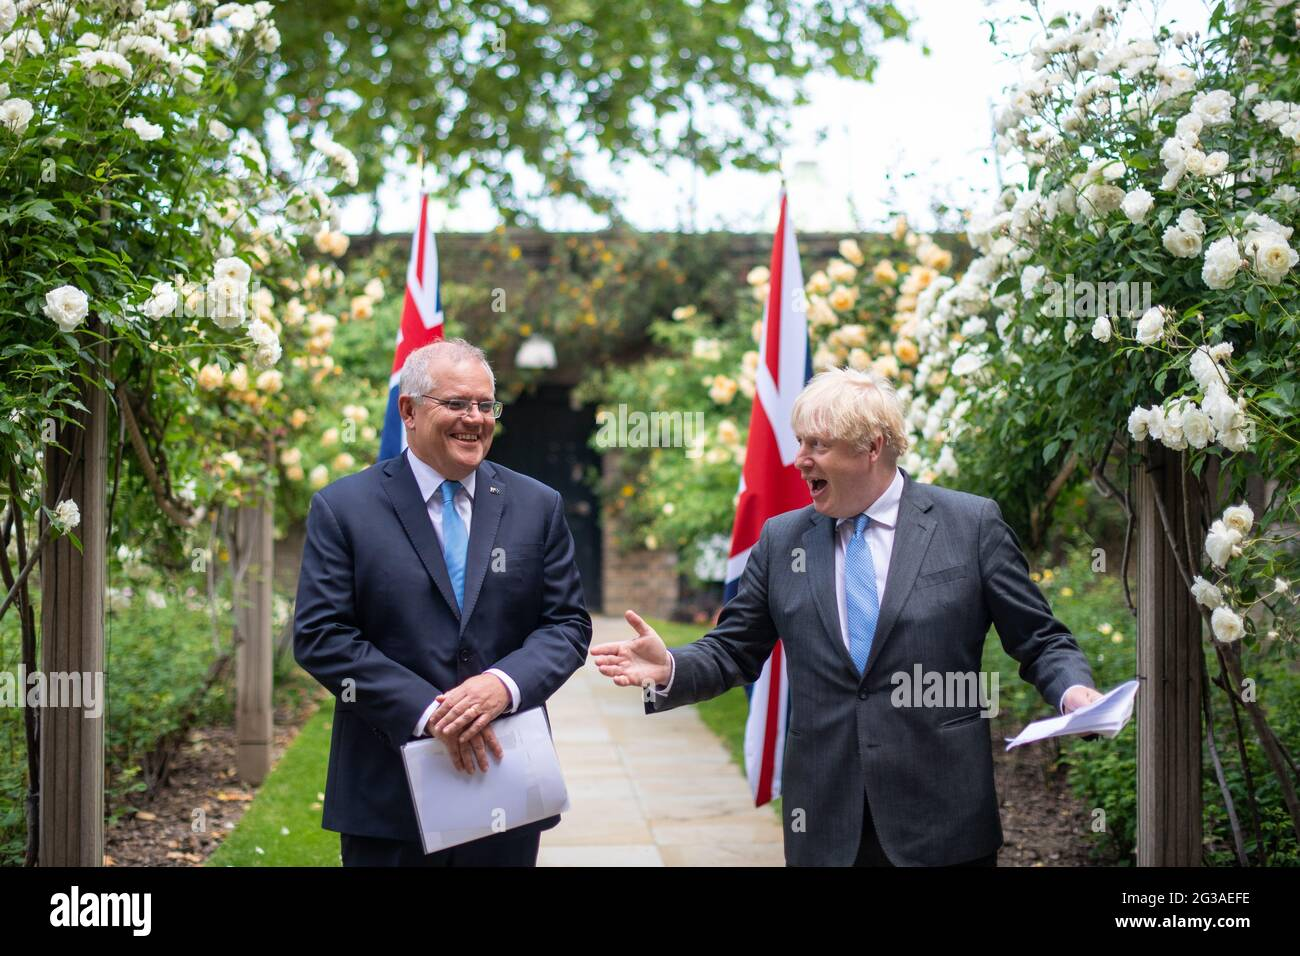 Prime Minister Boris Johnson with Australian Prime Minister Scott Morrison in the garden of 10 Downing Street, London, after agreeing the broad terms of a free trade deal between the UK and Australia, the UK's first trade deal negotiated fully since leaving the European Union. Picture date: Tuesday June 15, 2021. Stock Photo